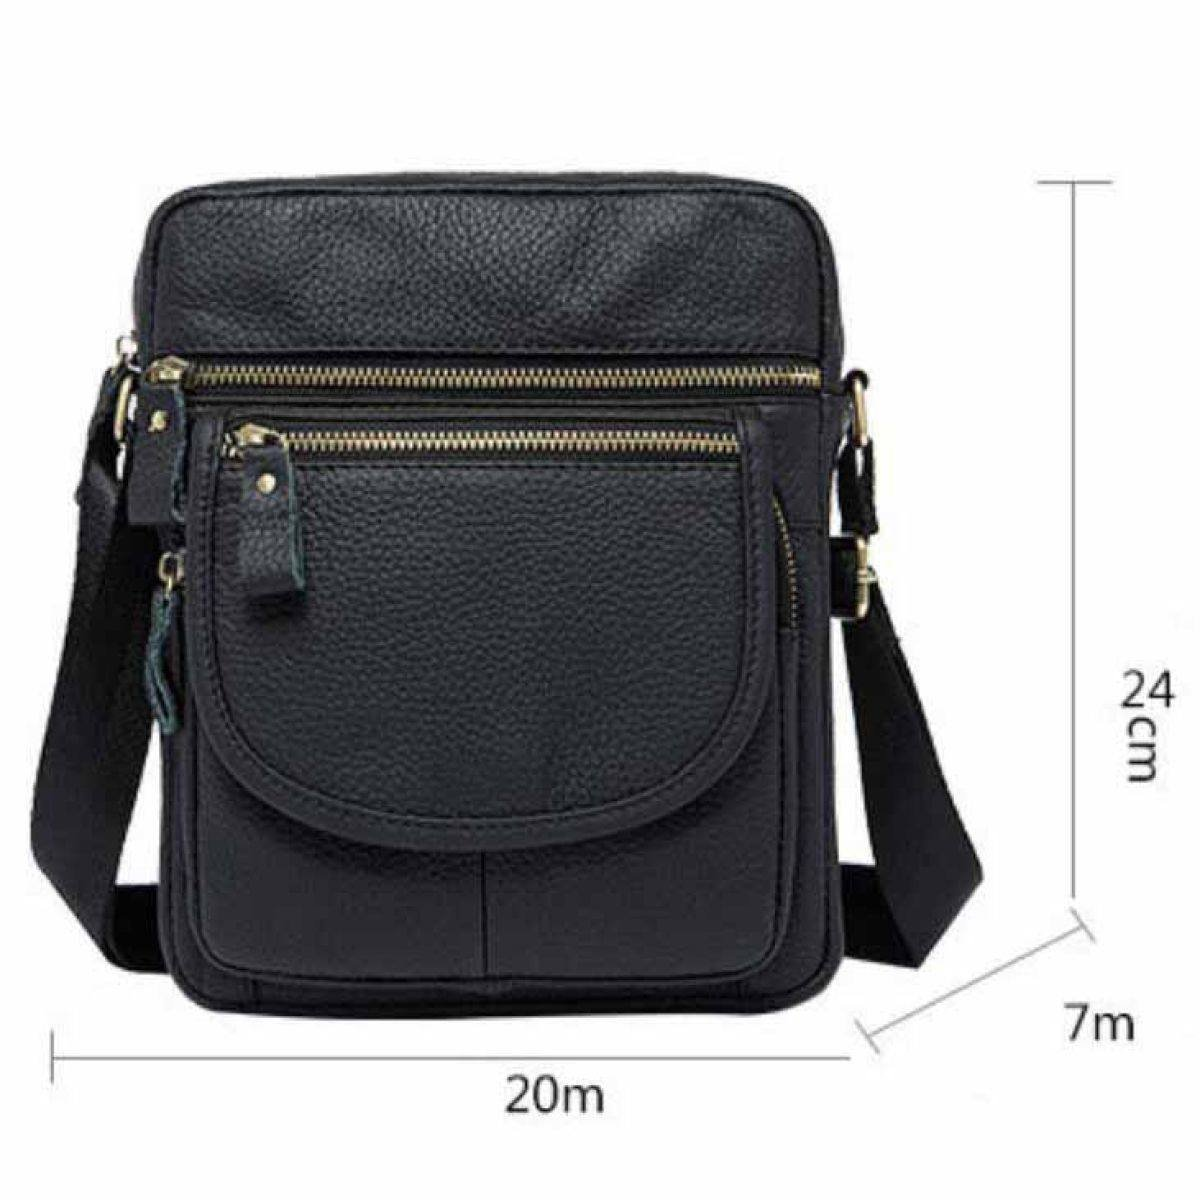 BAAFG Mens Shoulder Bag Leather Zipped Boy Over Shoulder Bag Small Lightweight Long Strap for Phone IPad Mini,Coffee-OneSize